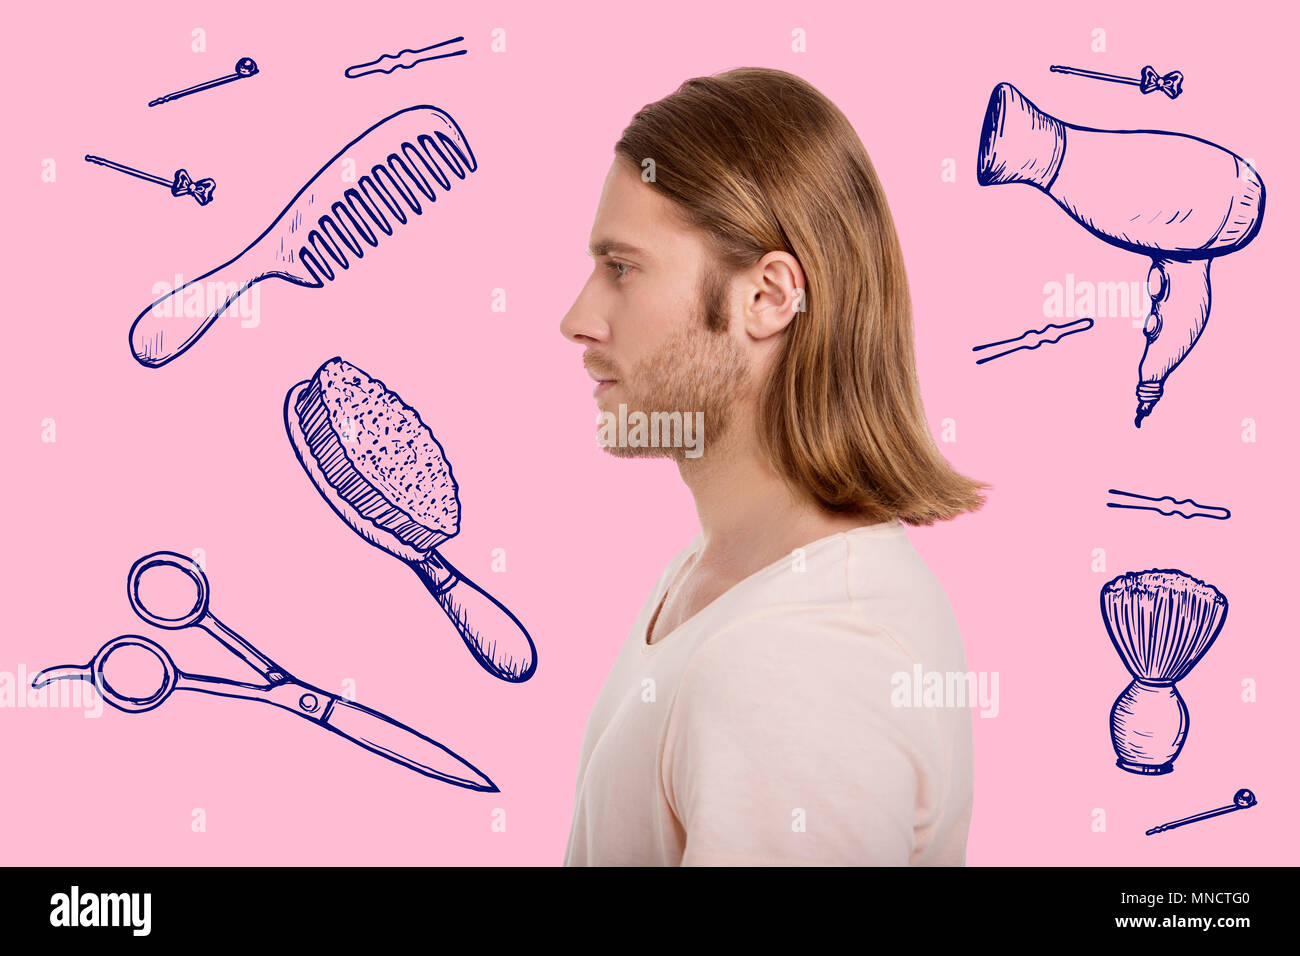 Profile of handsome man preparing for a date - Stock Image